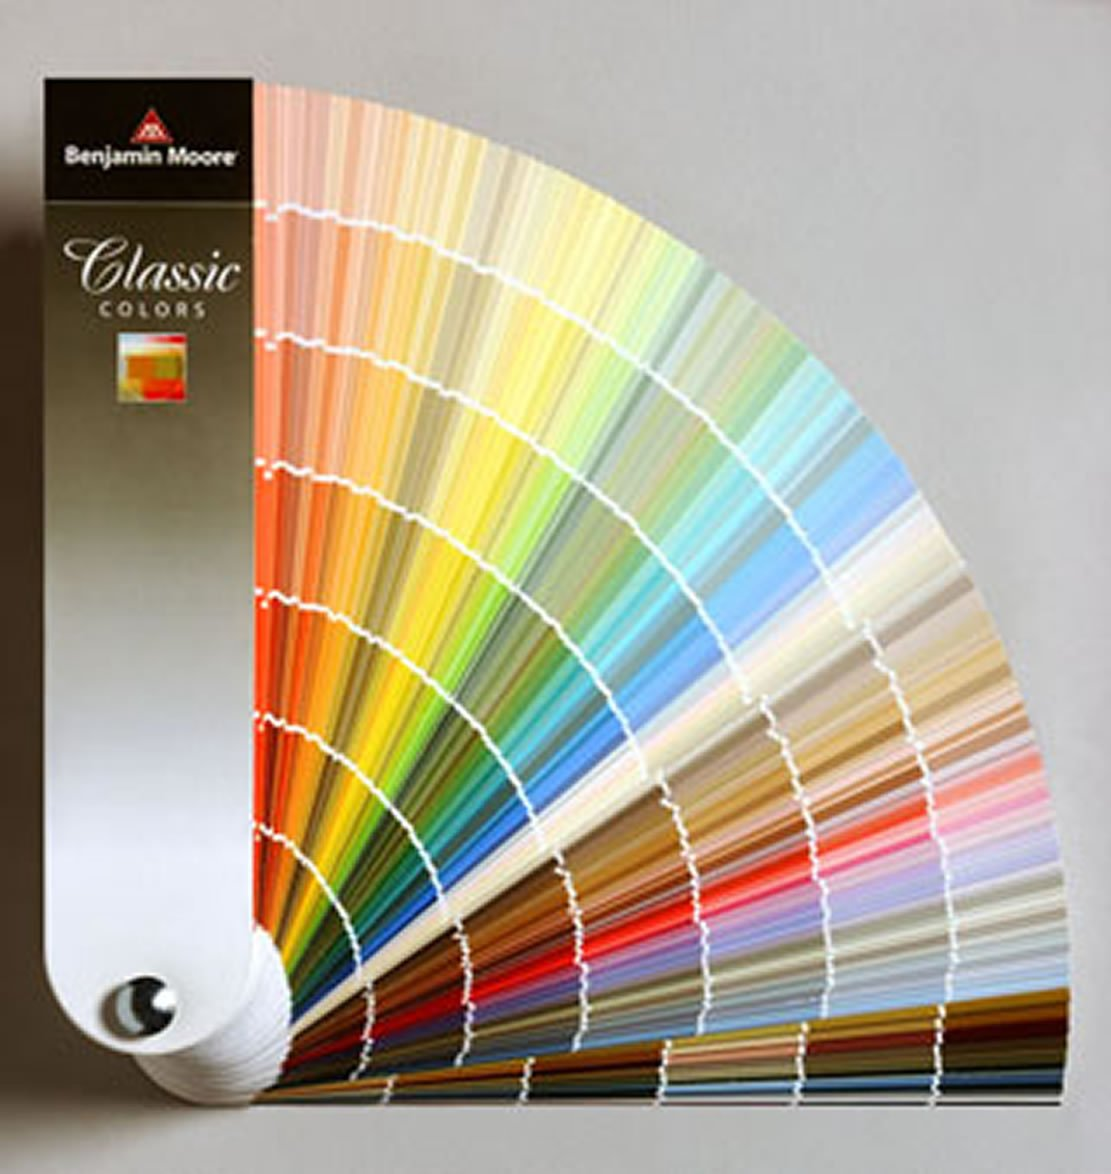 Benjamin Moore Classic Colors Fan Deck - House Paint - Amazon.com